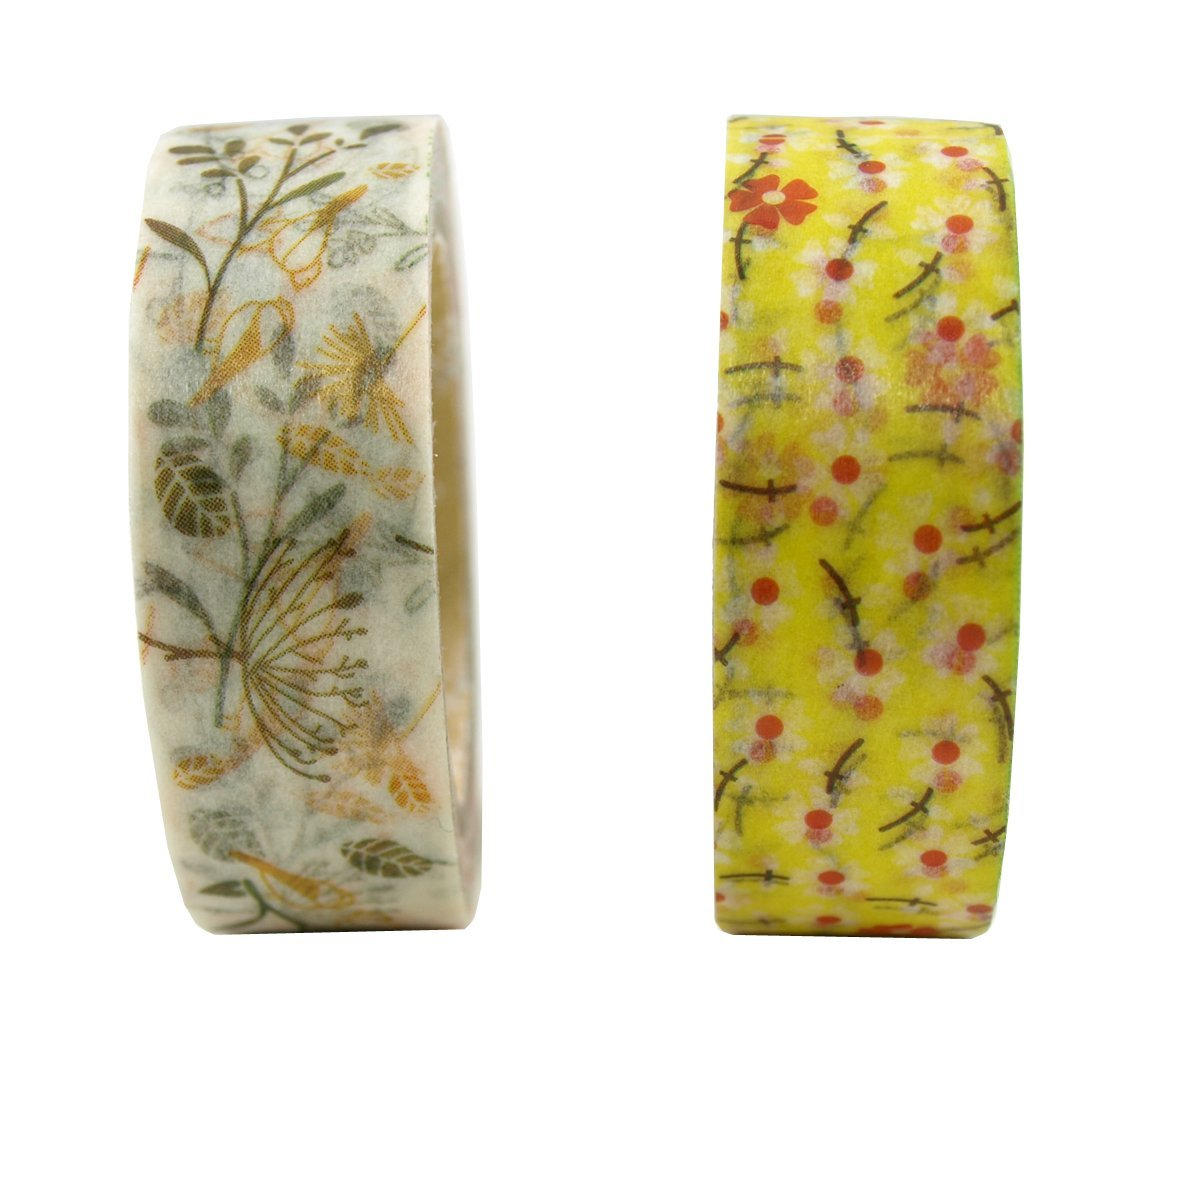 Wrapables Burst of Autumn Japanese Washi Masking Tape (Set of 2)